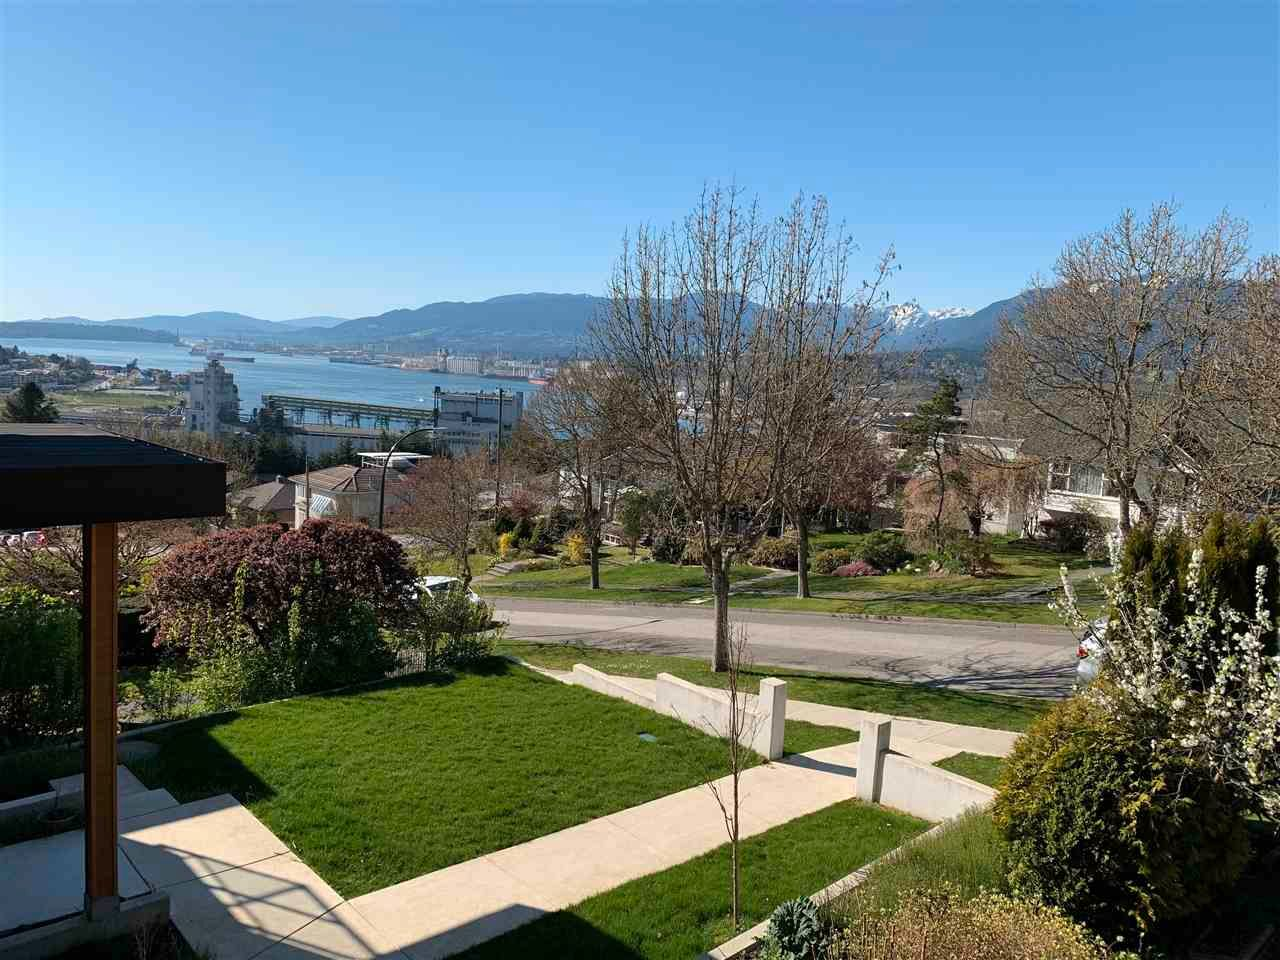 Main Photo: 3650 MCGILL Street in Vancouver: Hastings Sunrise House for sale (Vancouver East)  : MLS®# R2573202